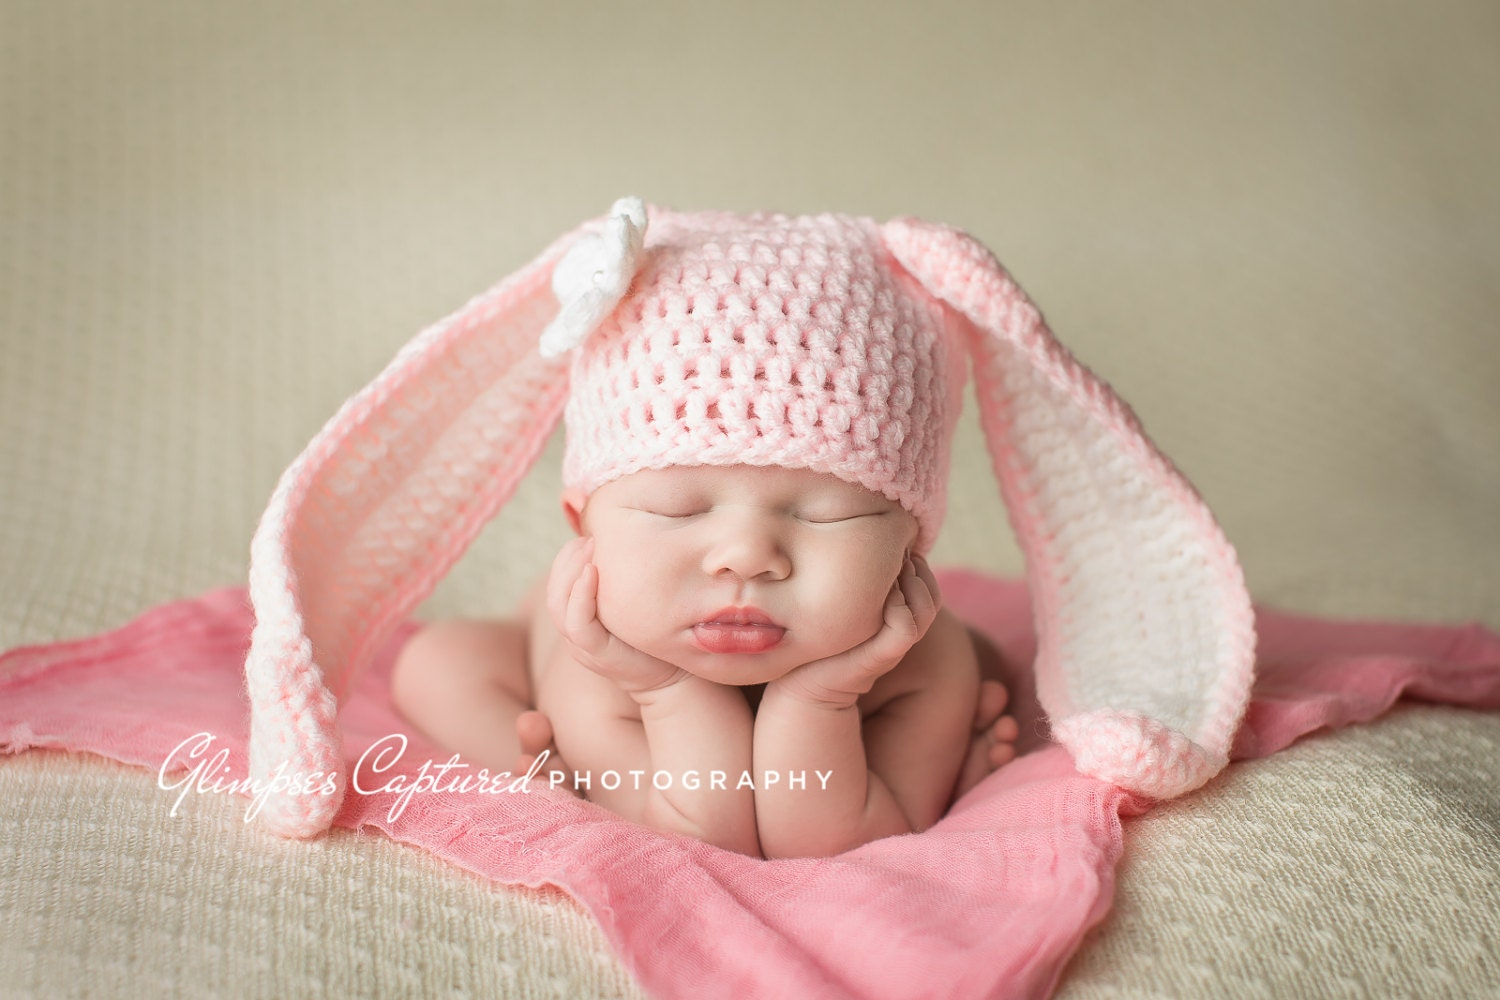 Crochet Pattern For Newborn Bunny Hat : Crochet Bunny Hat Crochet Baby Bunny Hat Bunny Photo Prop